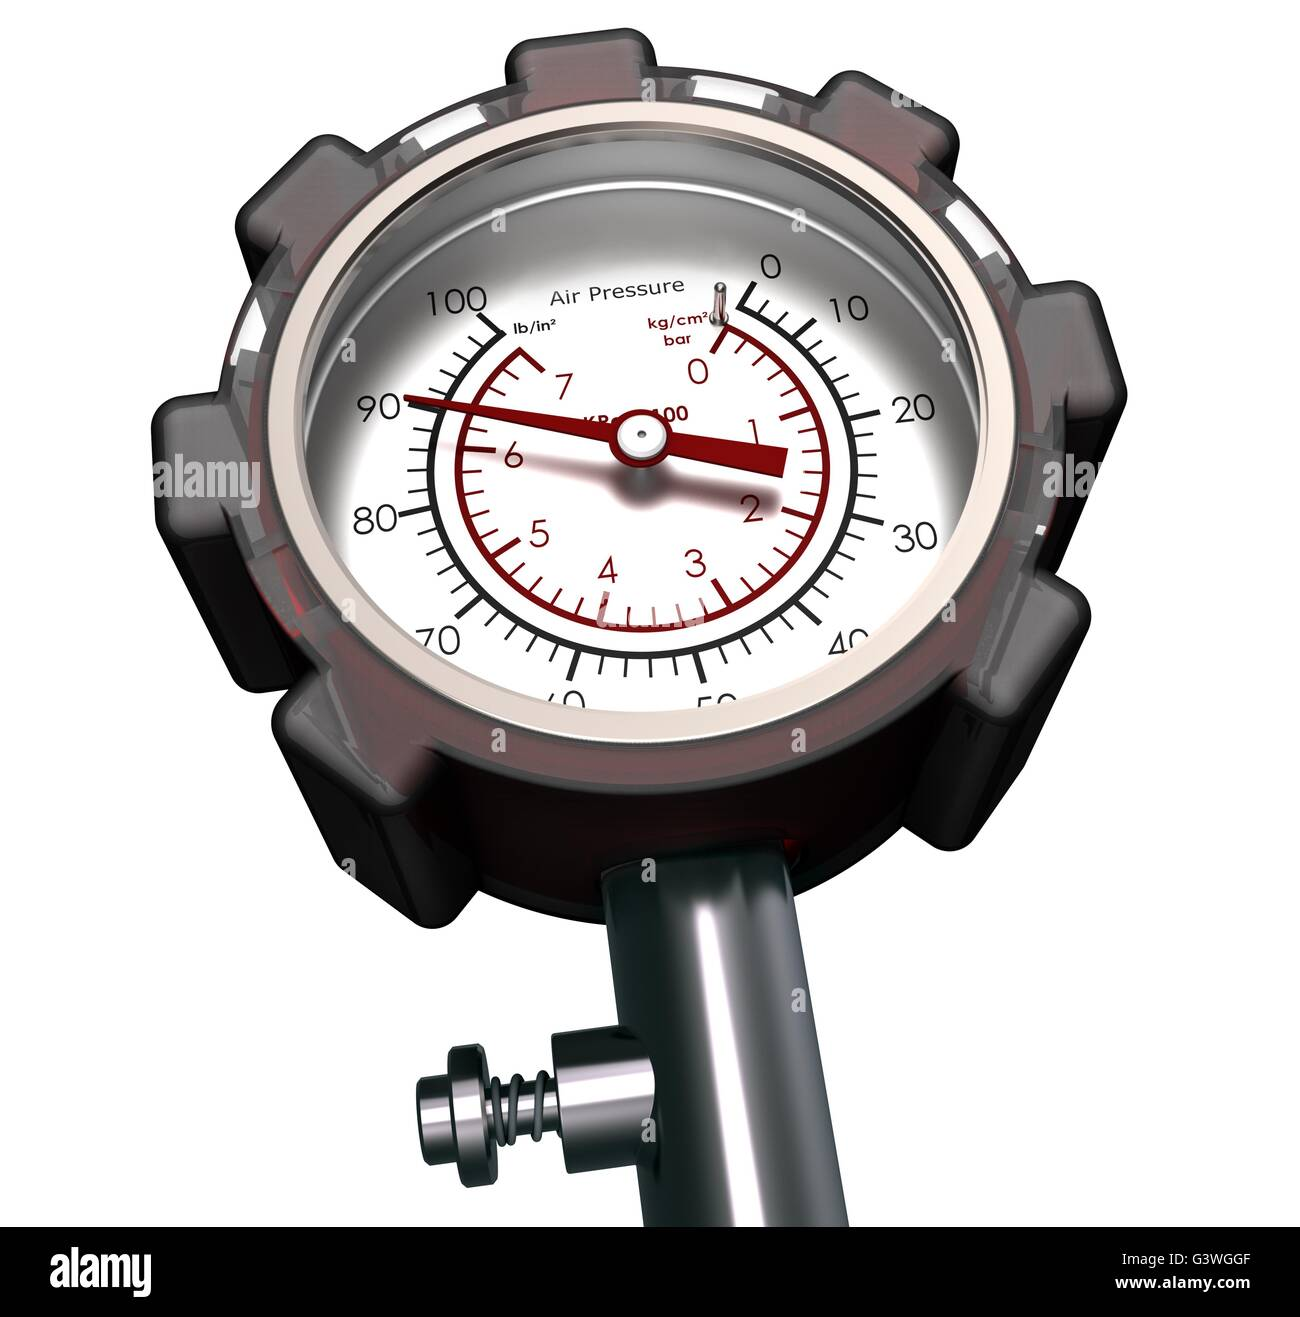 Pressure Gauge isolated On a White background. - Stock Image